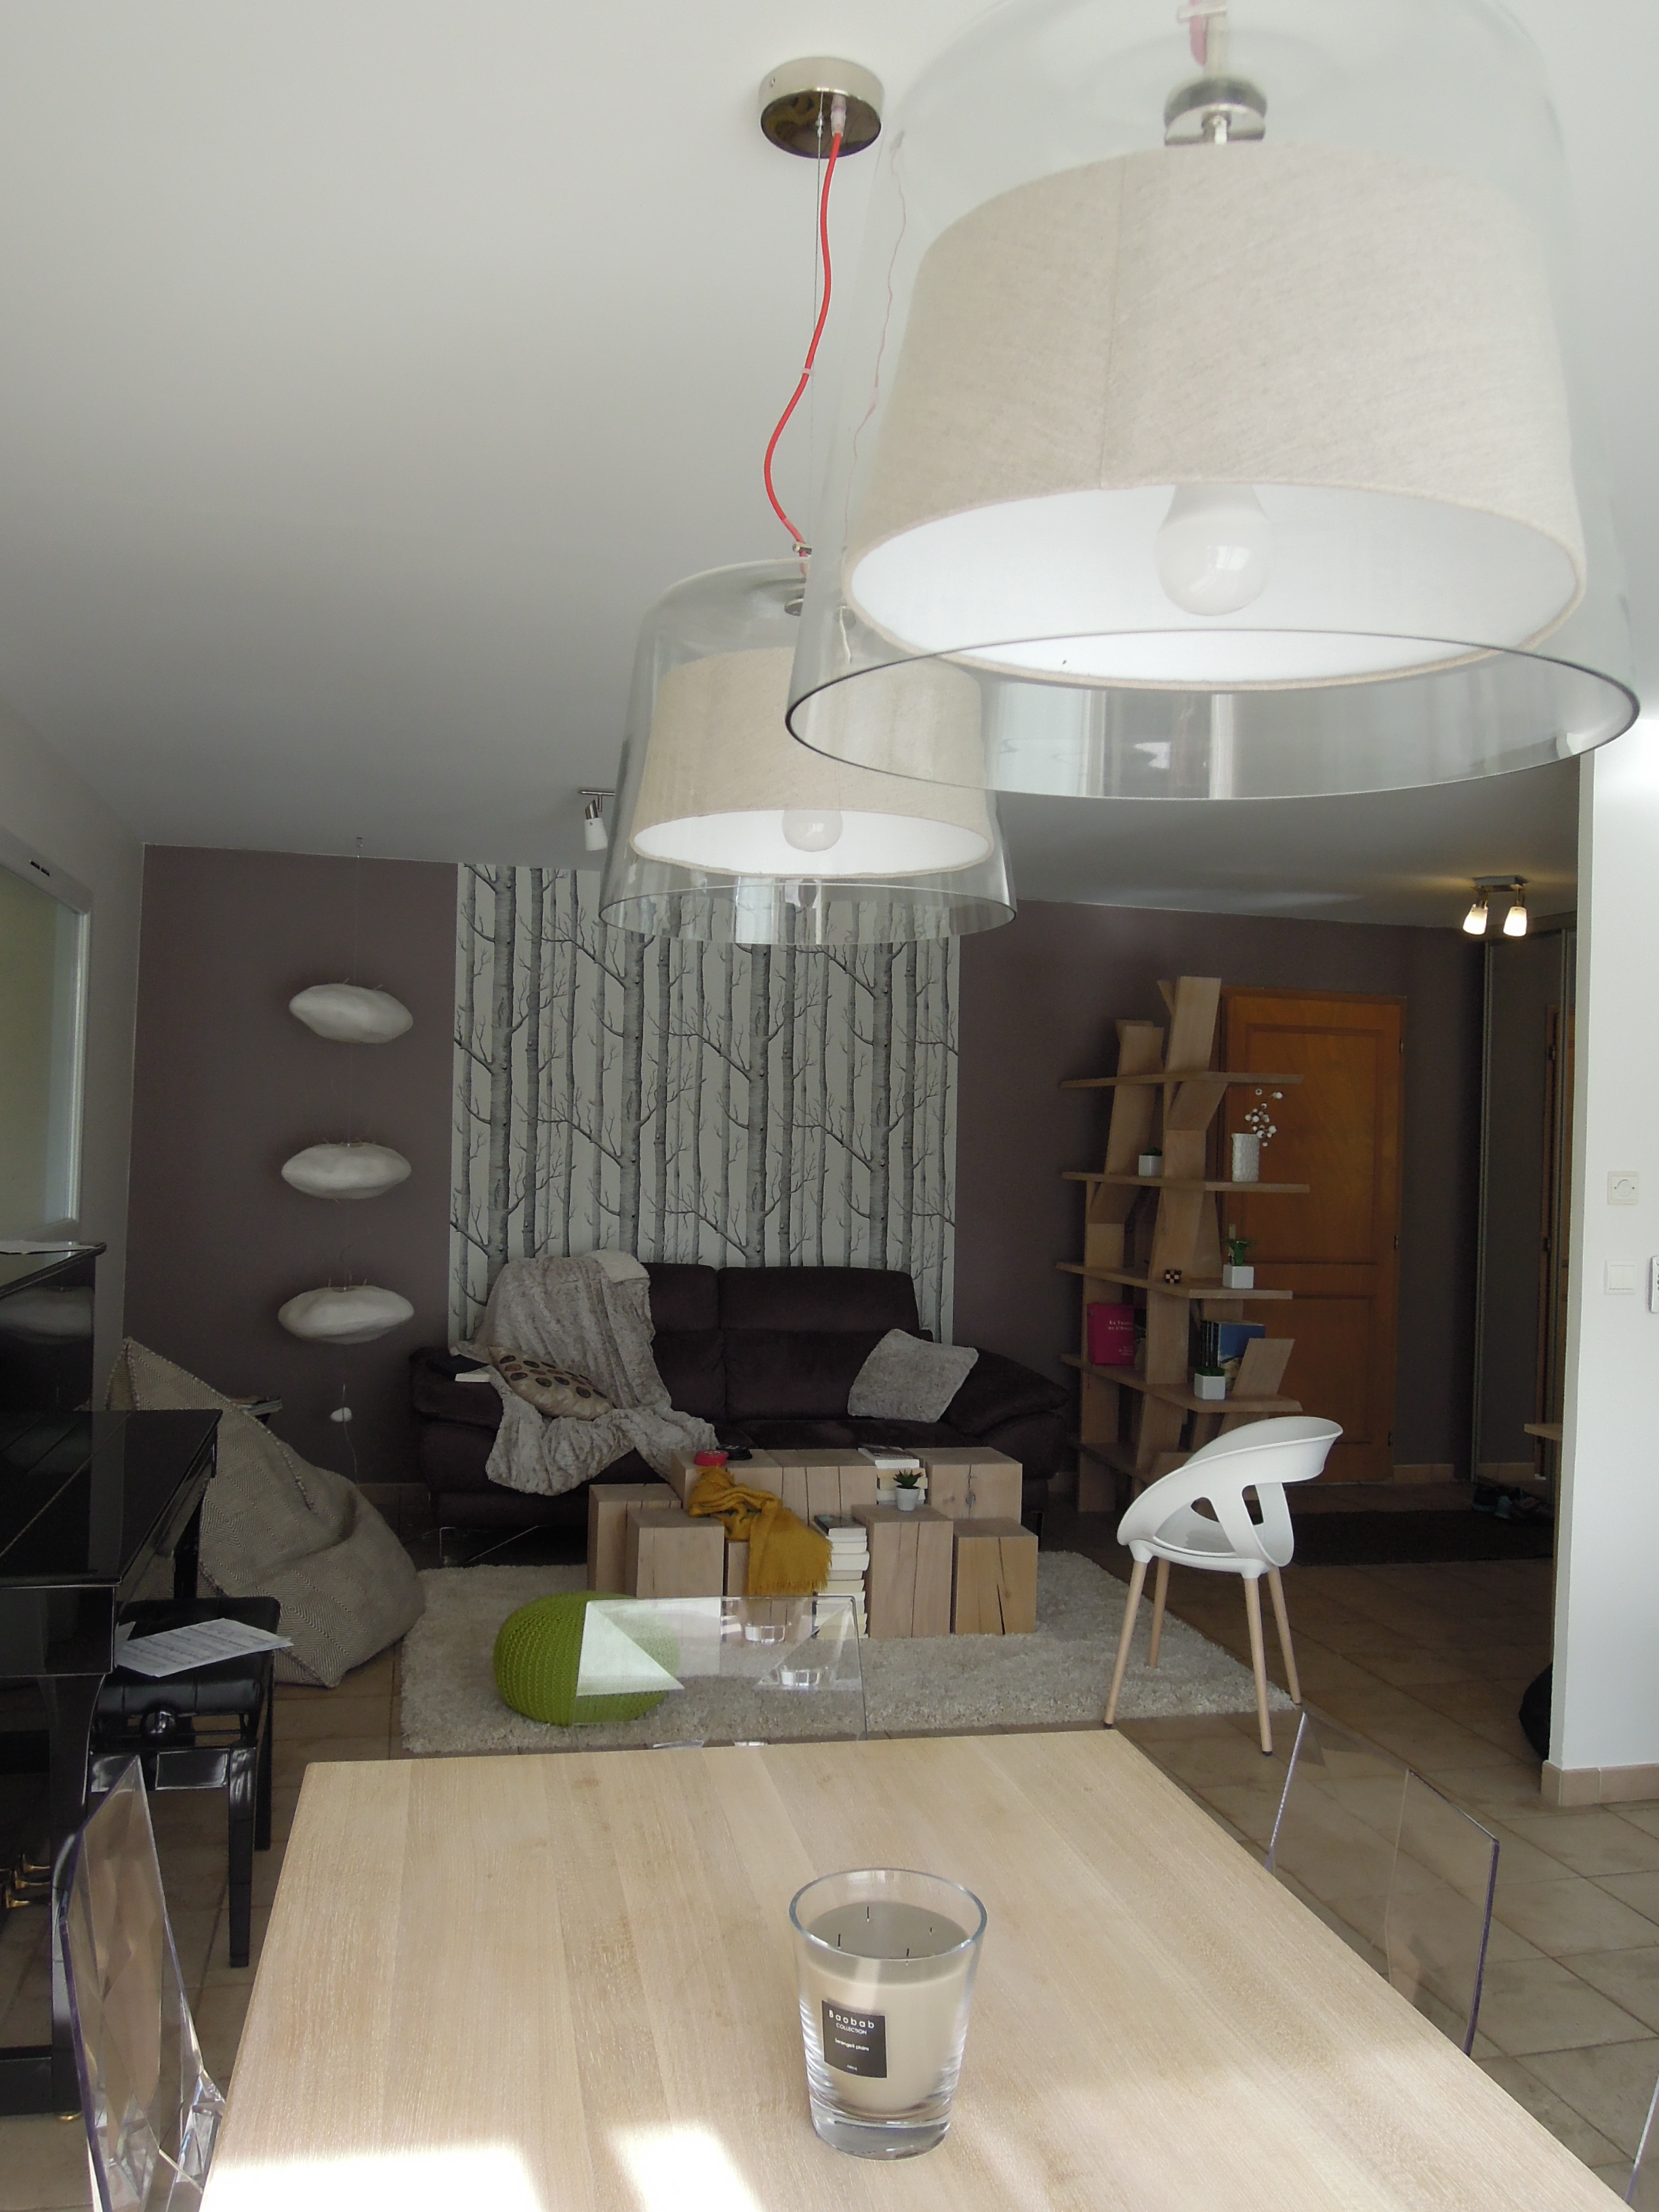 Am nagement et d coration int rieure d 39 un salon lyon for Amenagement decoration interieur